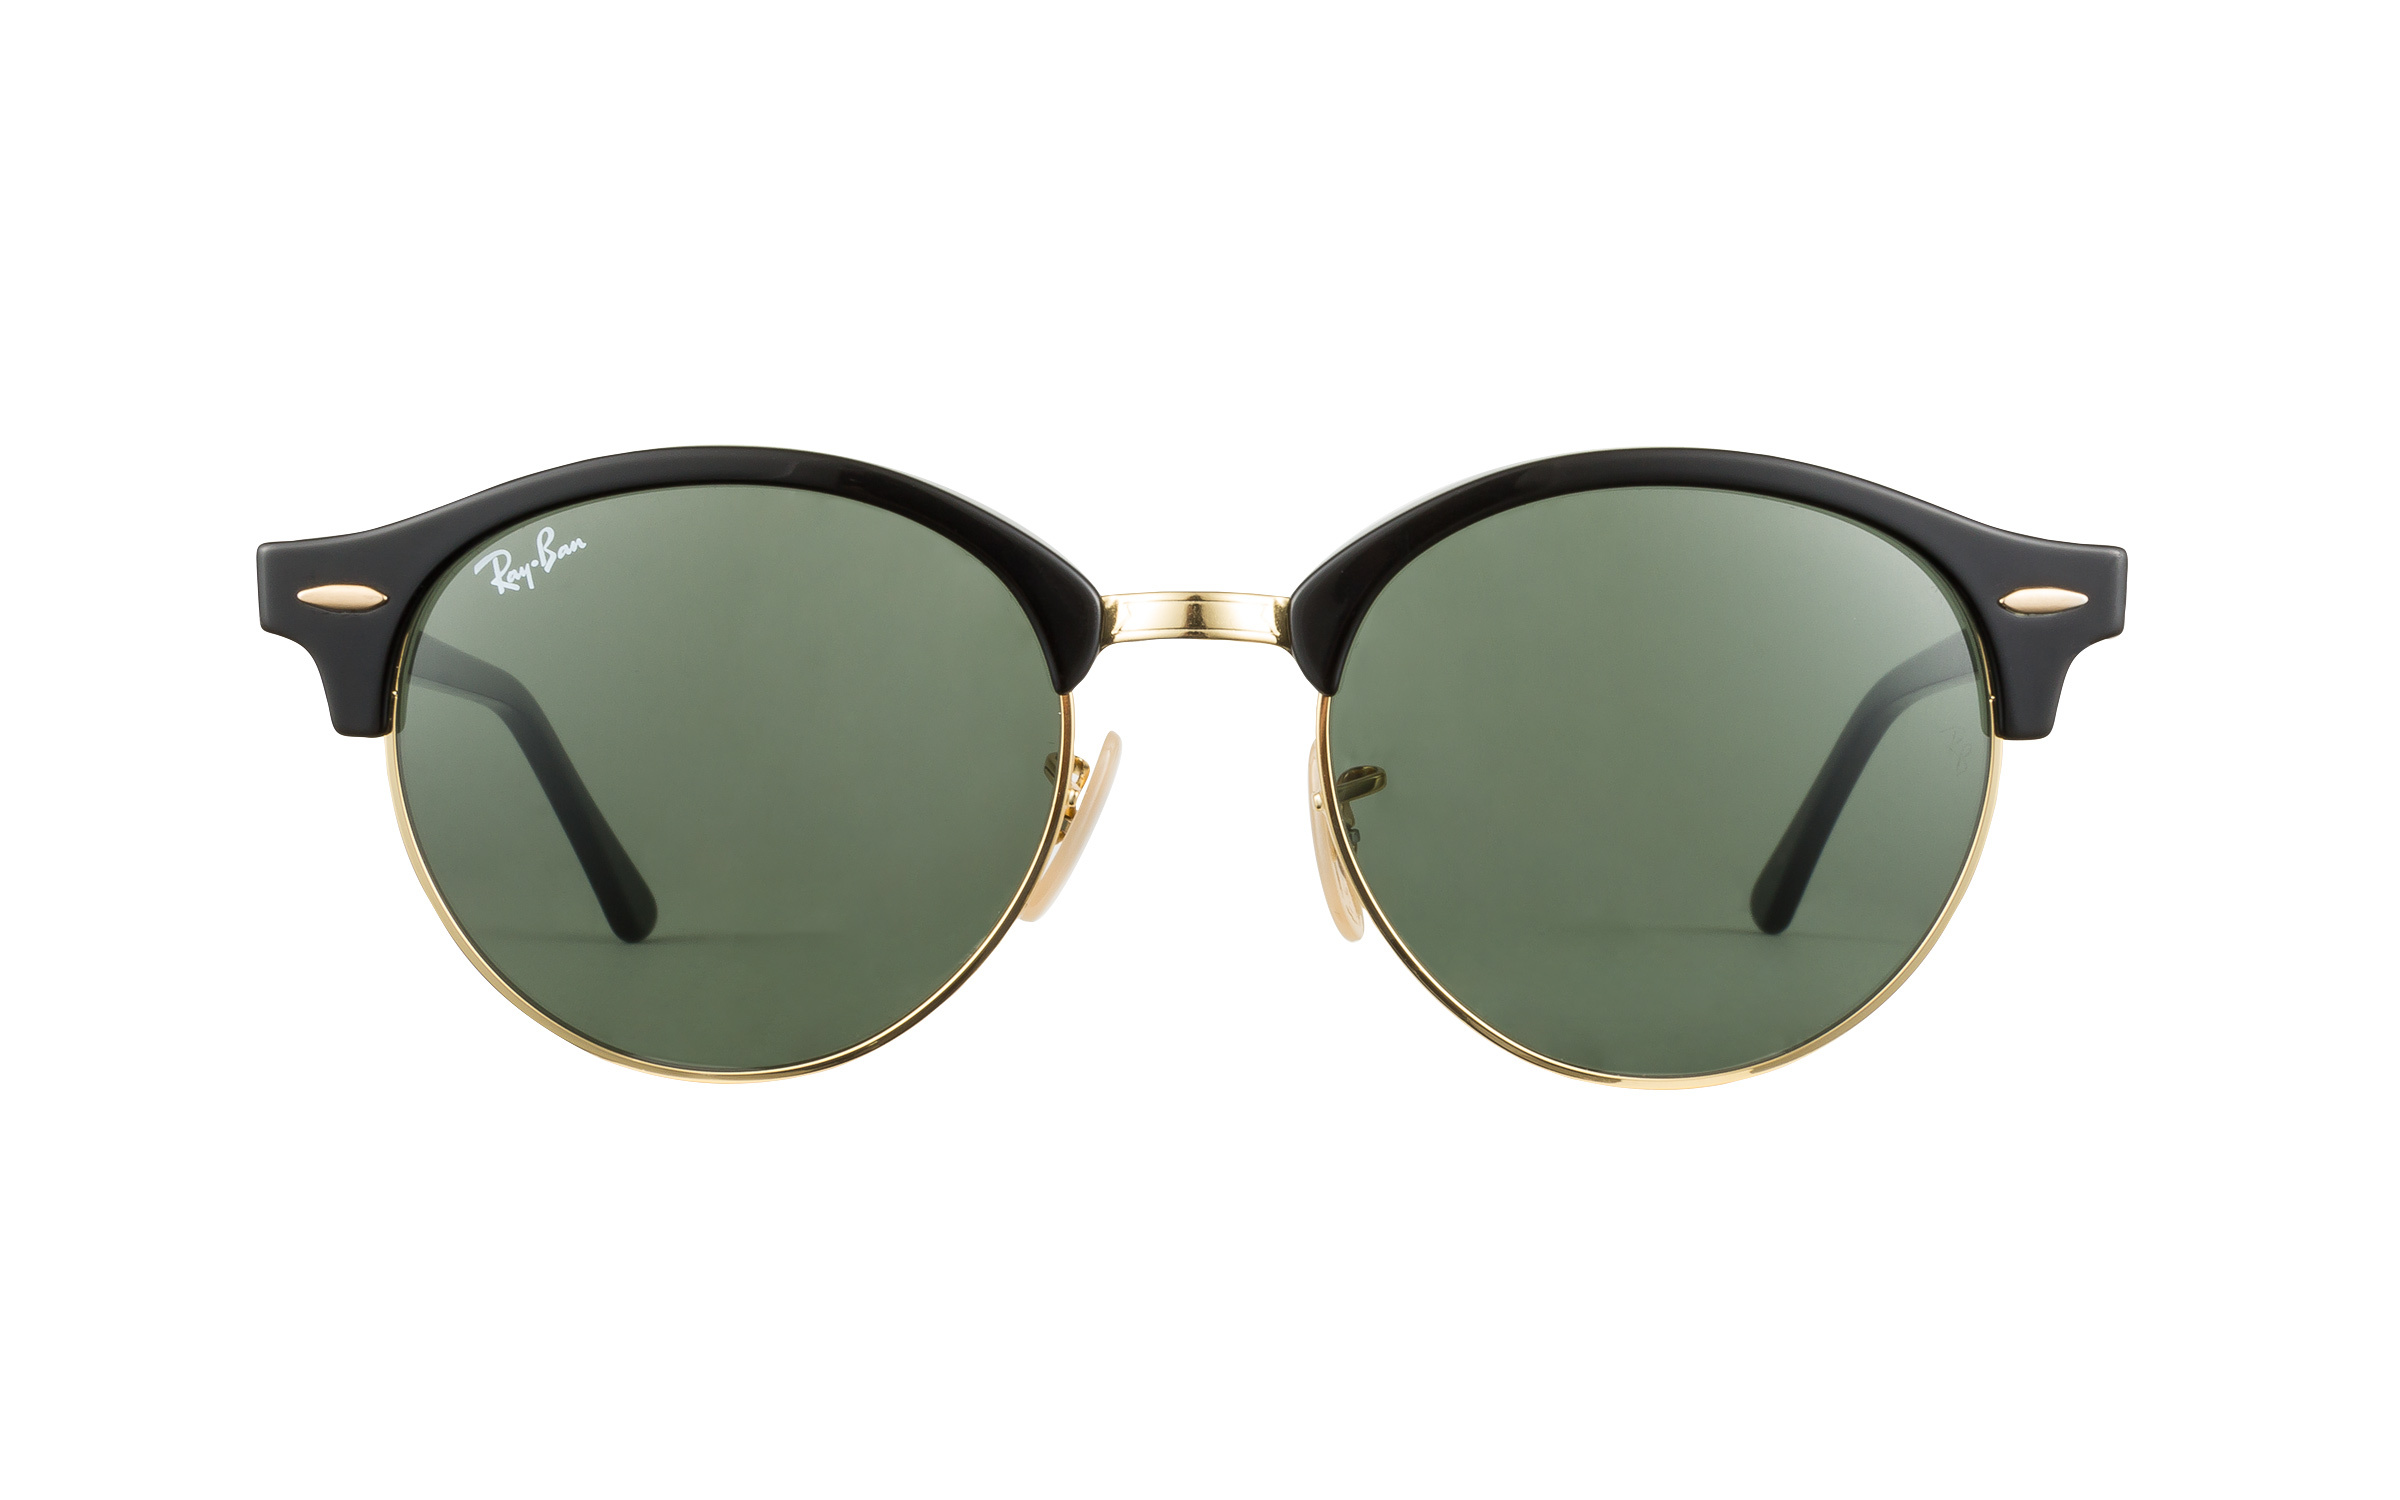 new ray ban sunglasses  Shop for Ray-Ban sunglasses online with friendly service and a ...